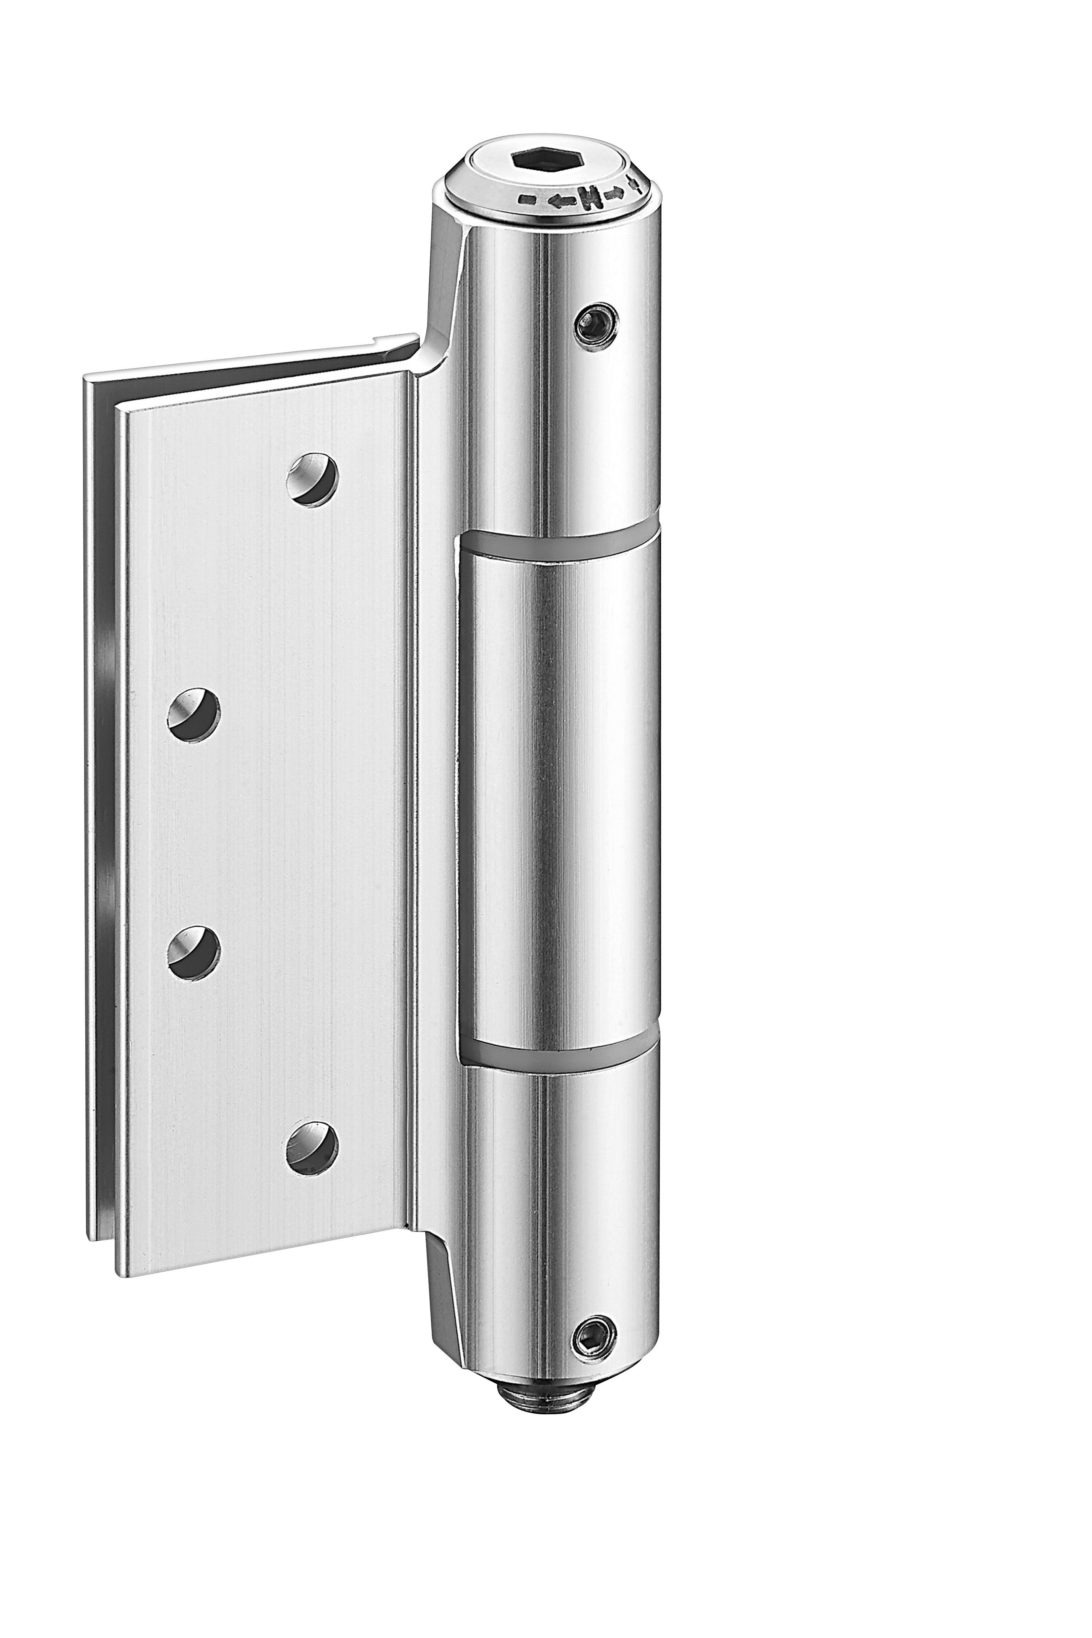 self closing cabinet hinges black cabinet hinges cabinet door hinges cabinet hinges inset types hinges for cabinet doors 1092x1638